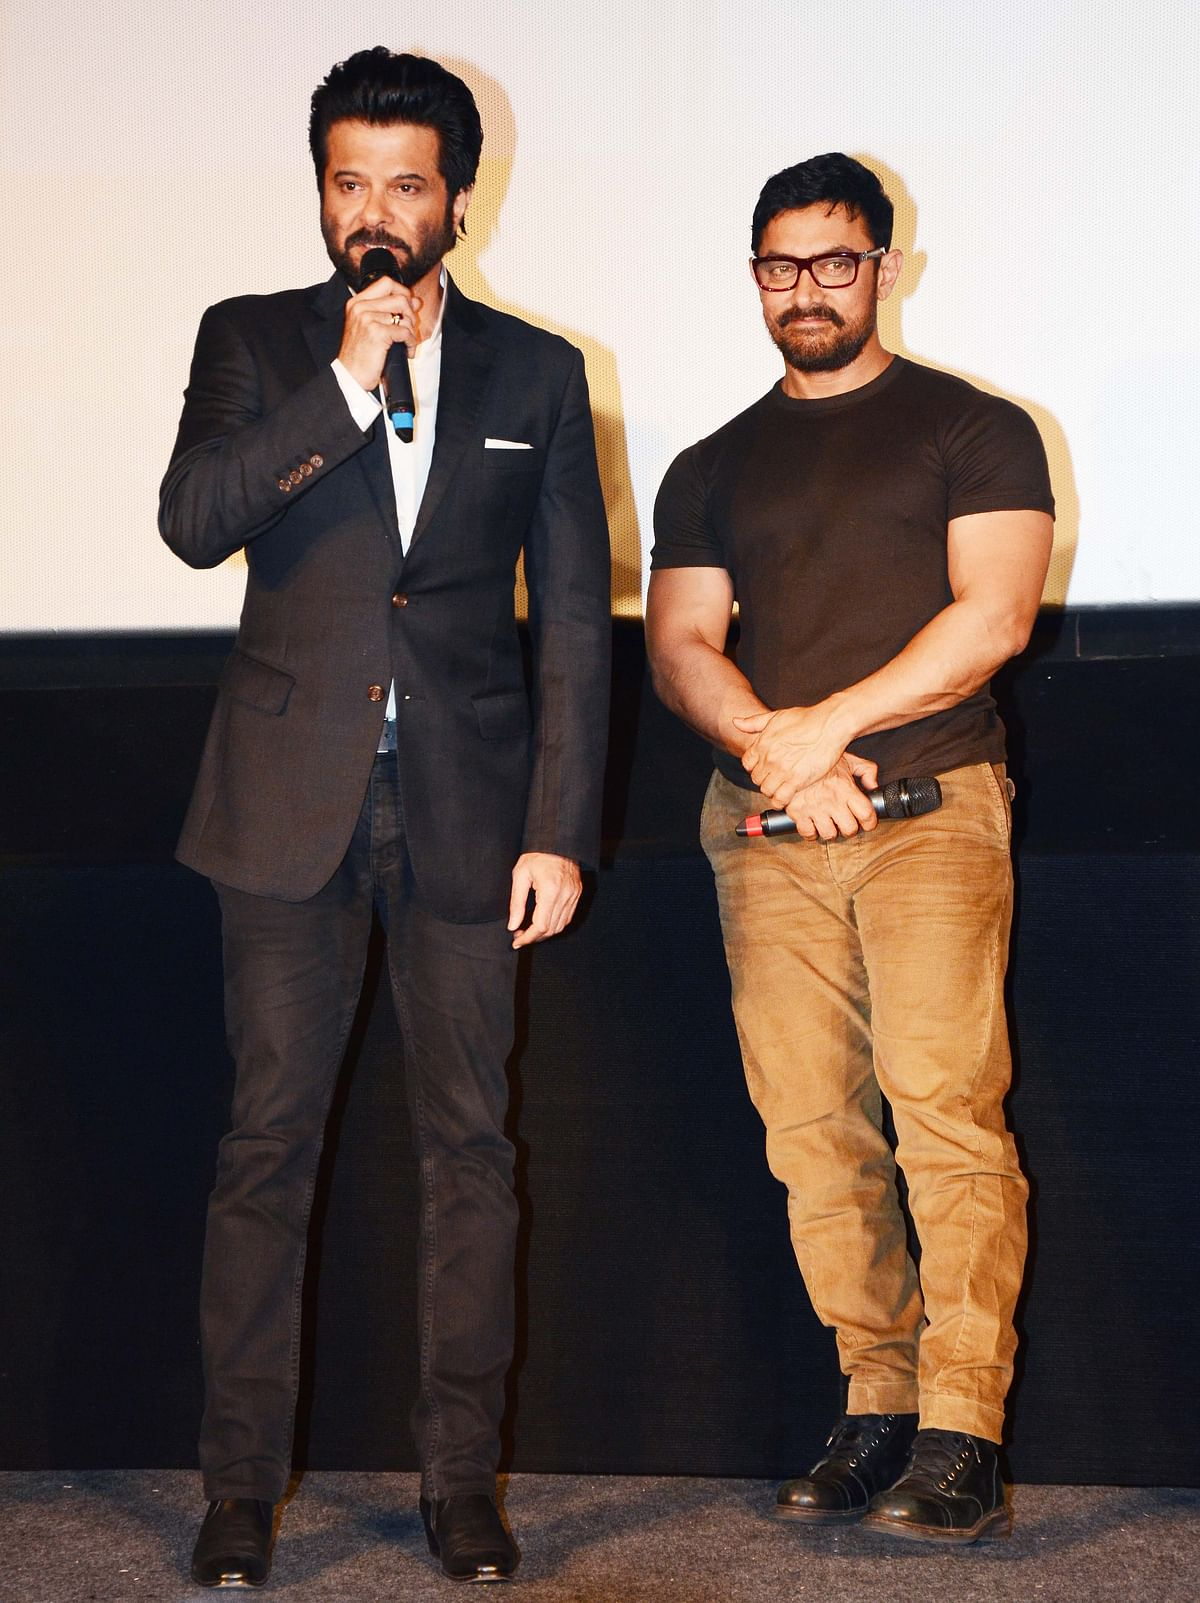 Anil Kapoor and Aamir Khan at the trailer launch(Photo: Yogen Shah)